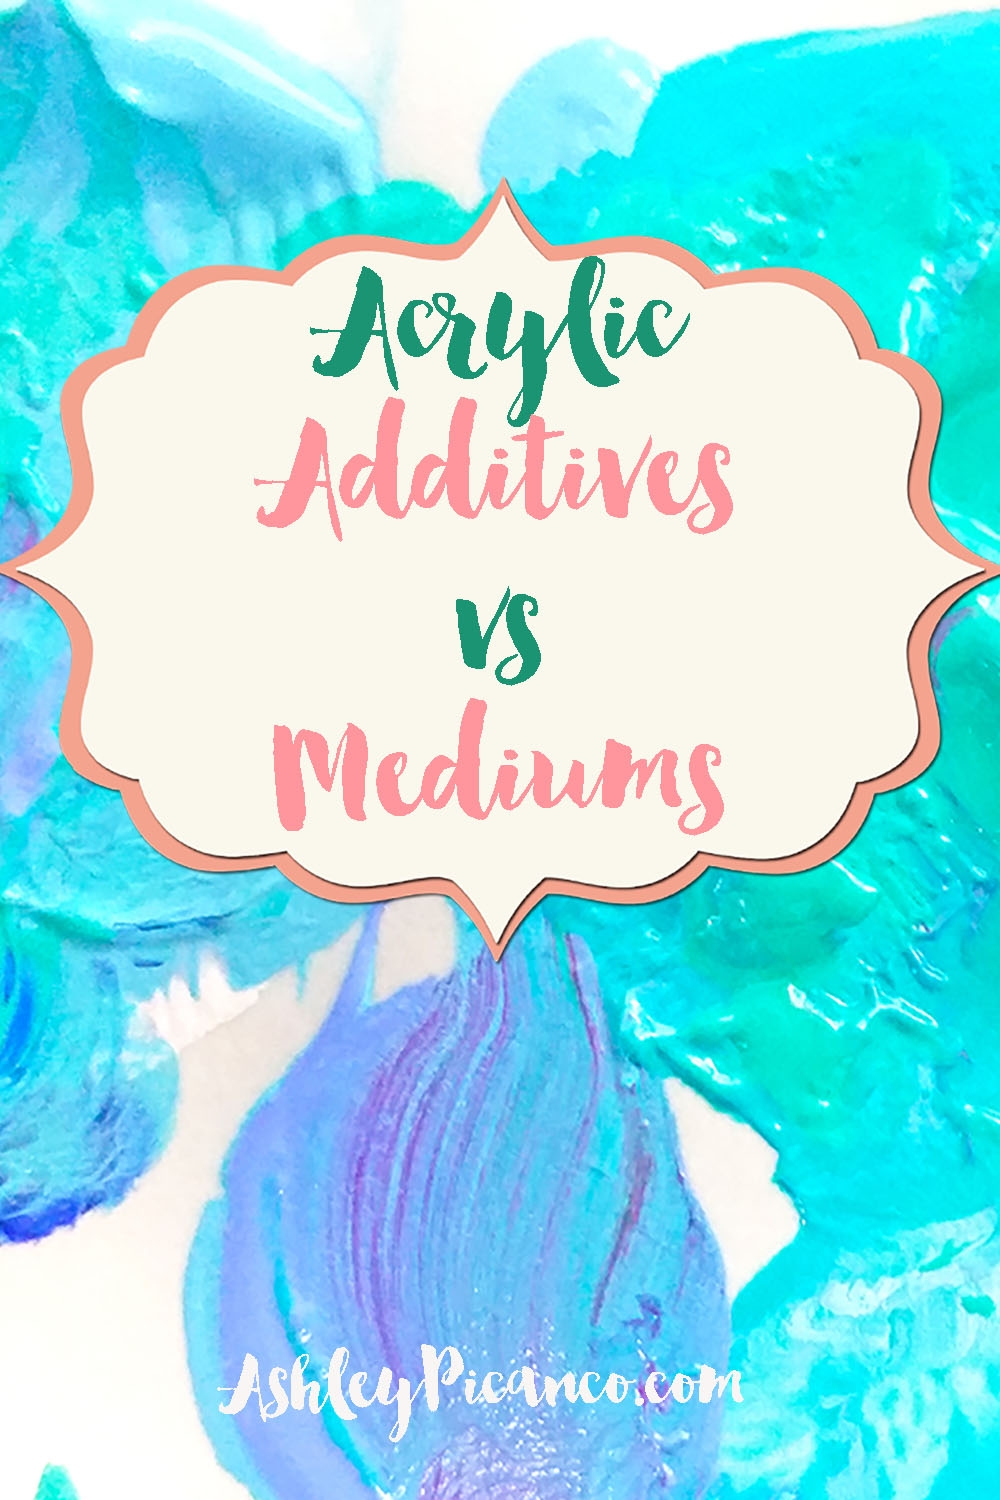 What's the difference between acrylic additives and mediums?